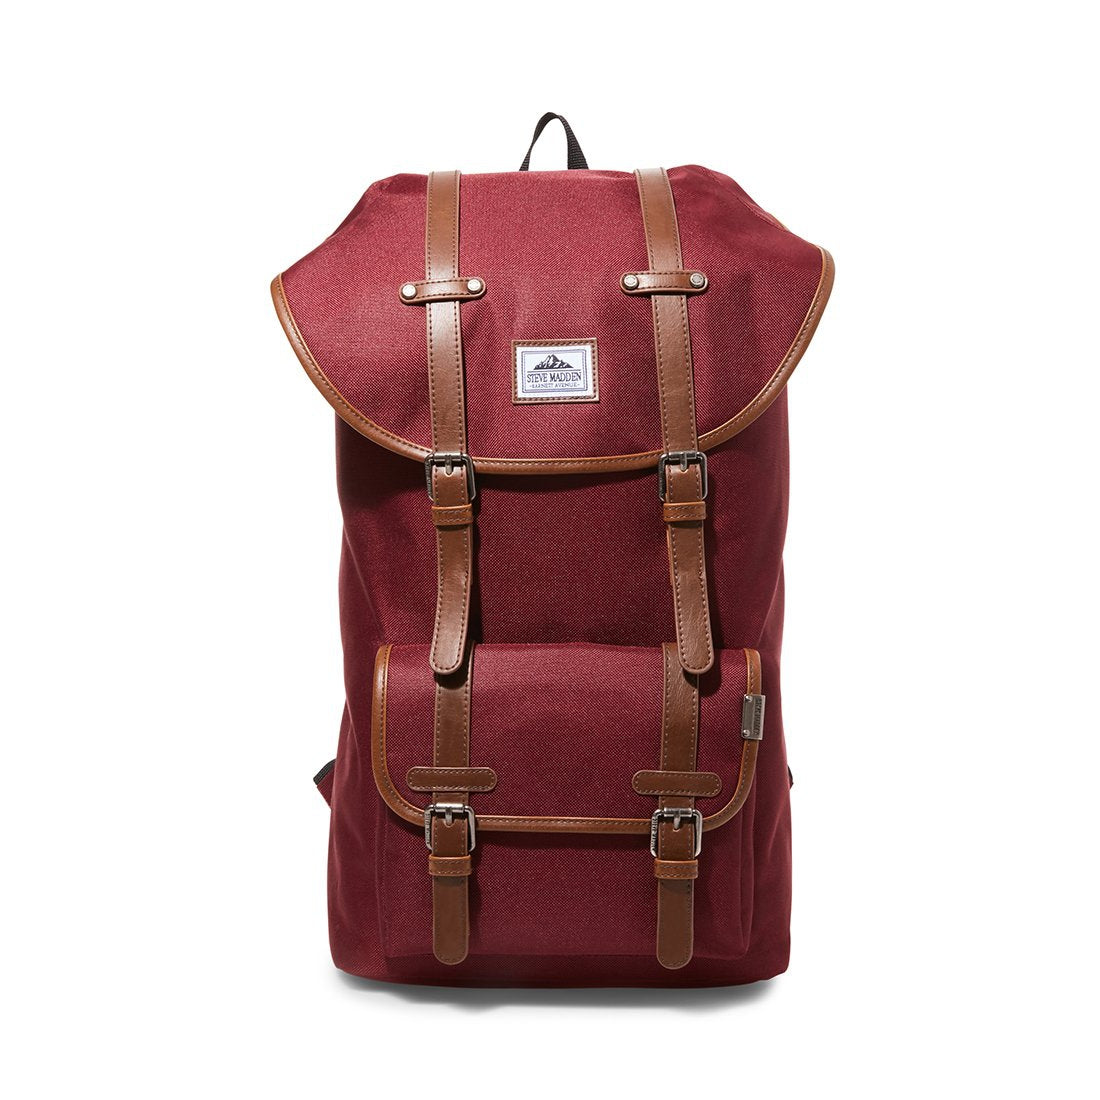 240b139a046 Men's Designer Backpacks & Bags | Steve Madden | Free Shipping